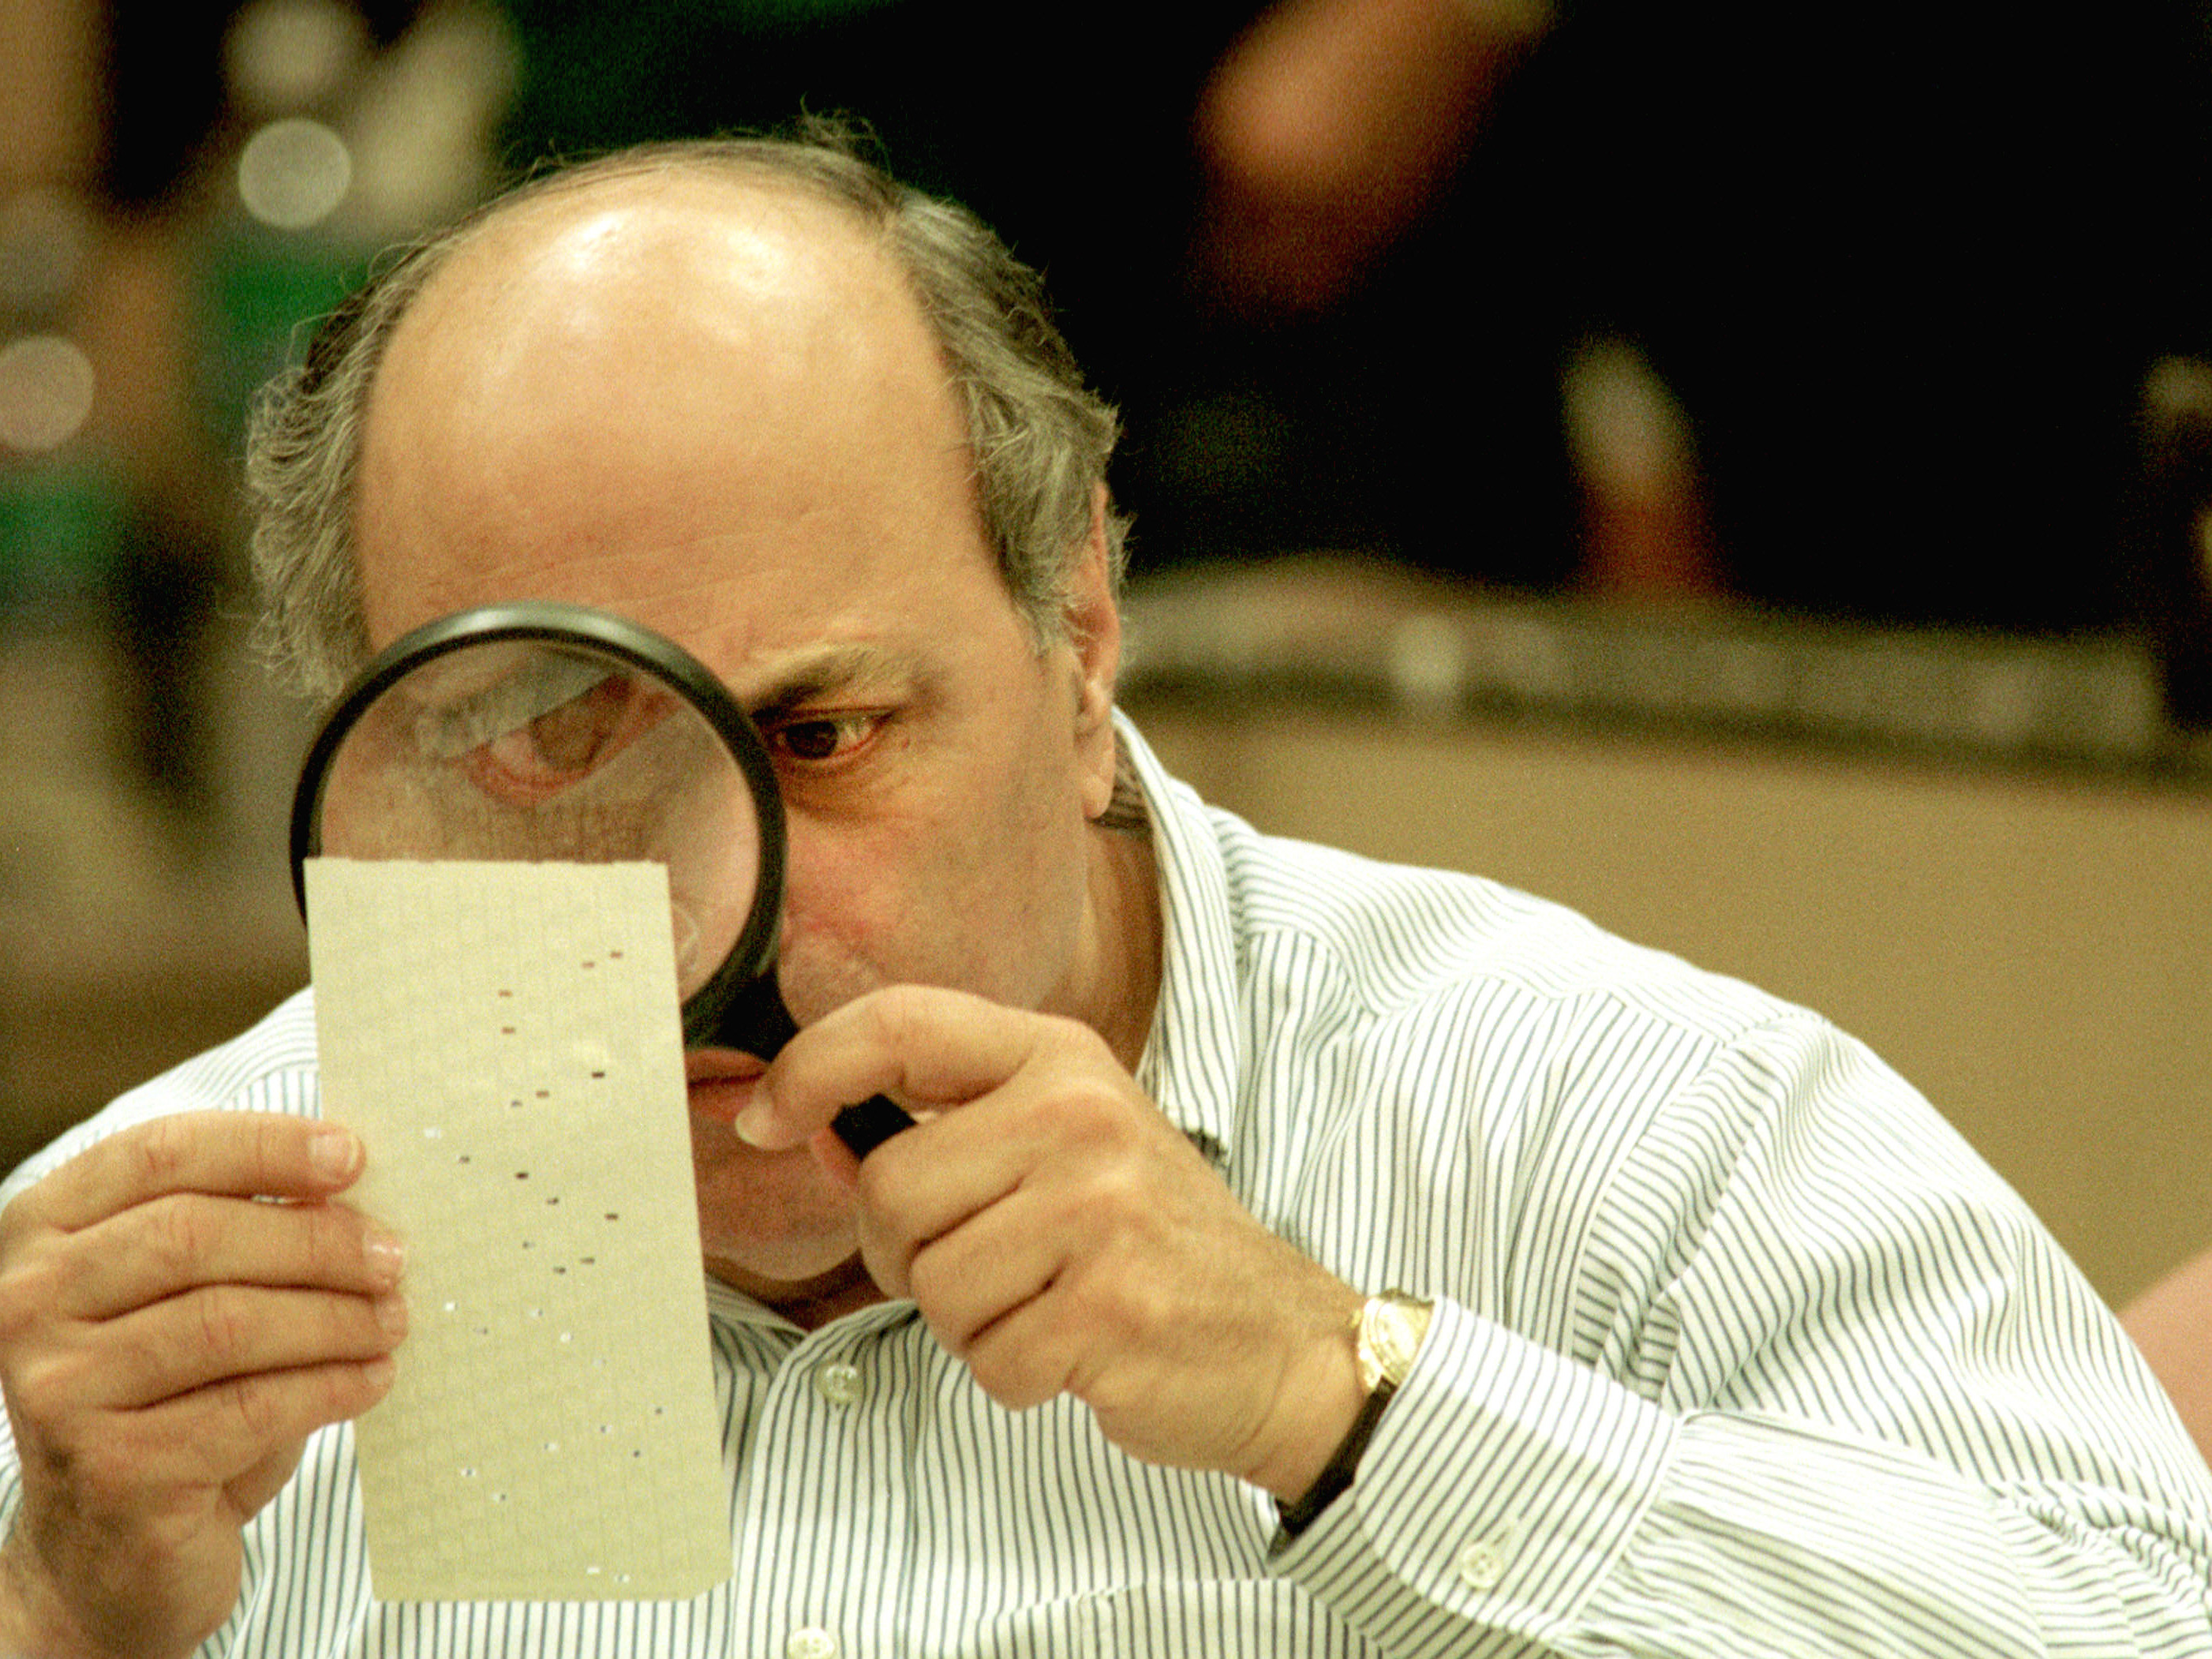 The Florida Recount Of 2000: A Nightmare That Goes On Haunting : NPR